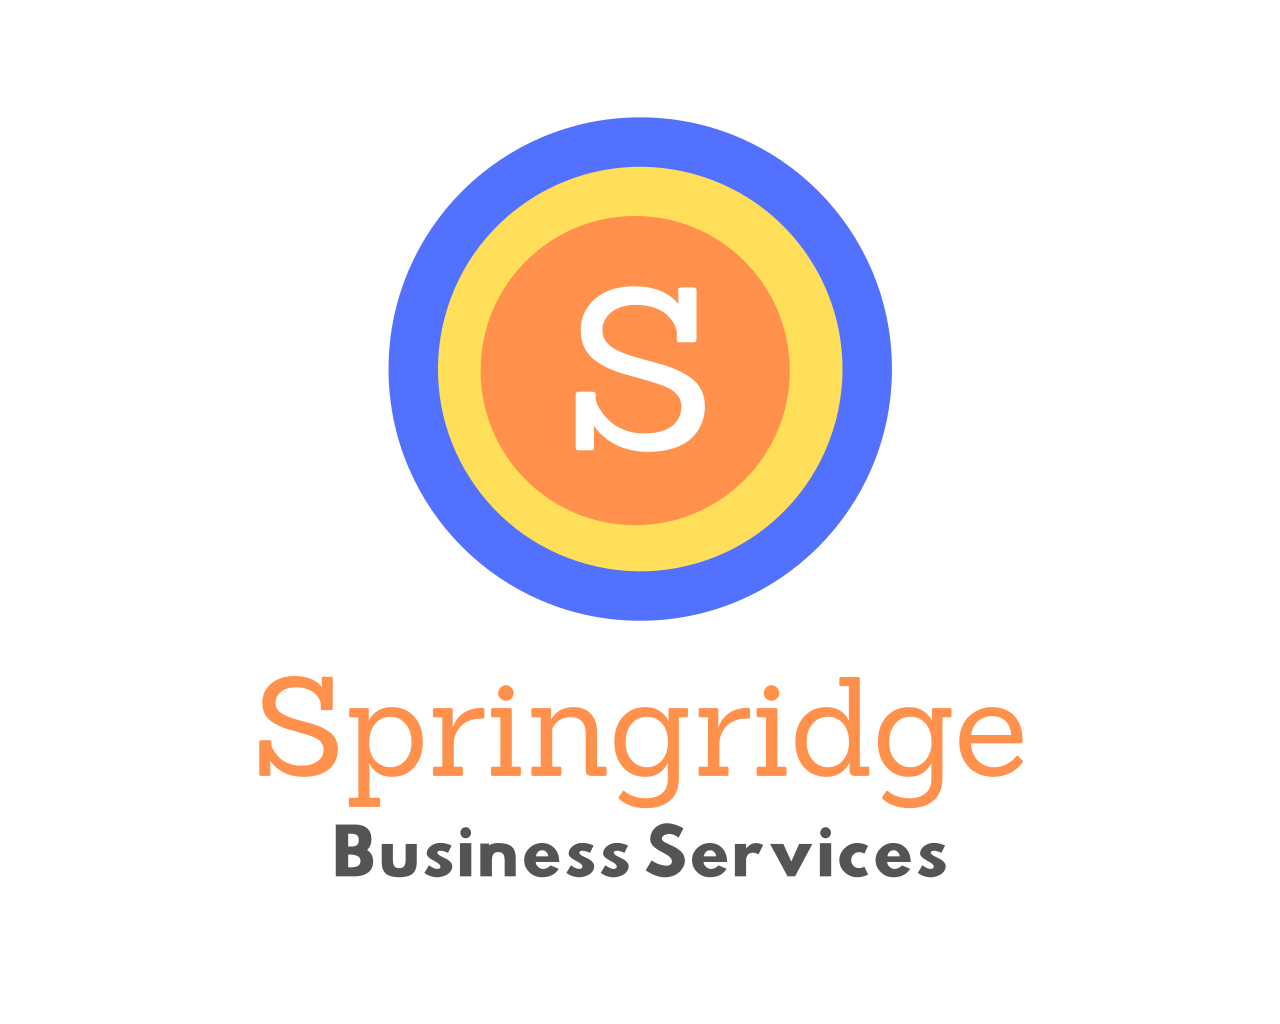 Springridge Business Services logo